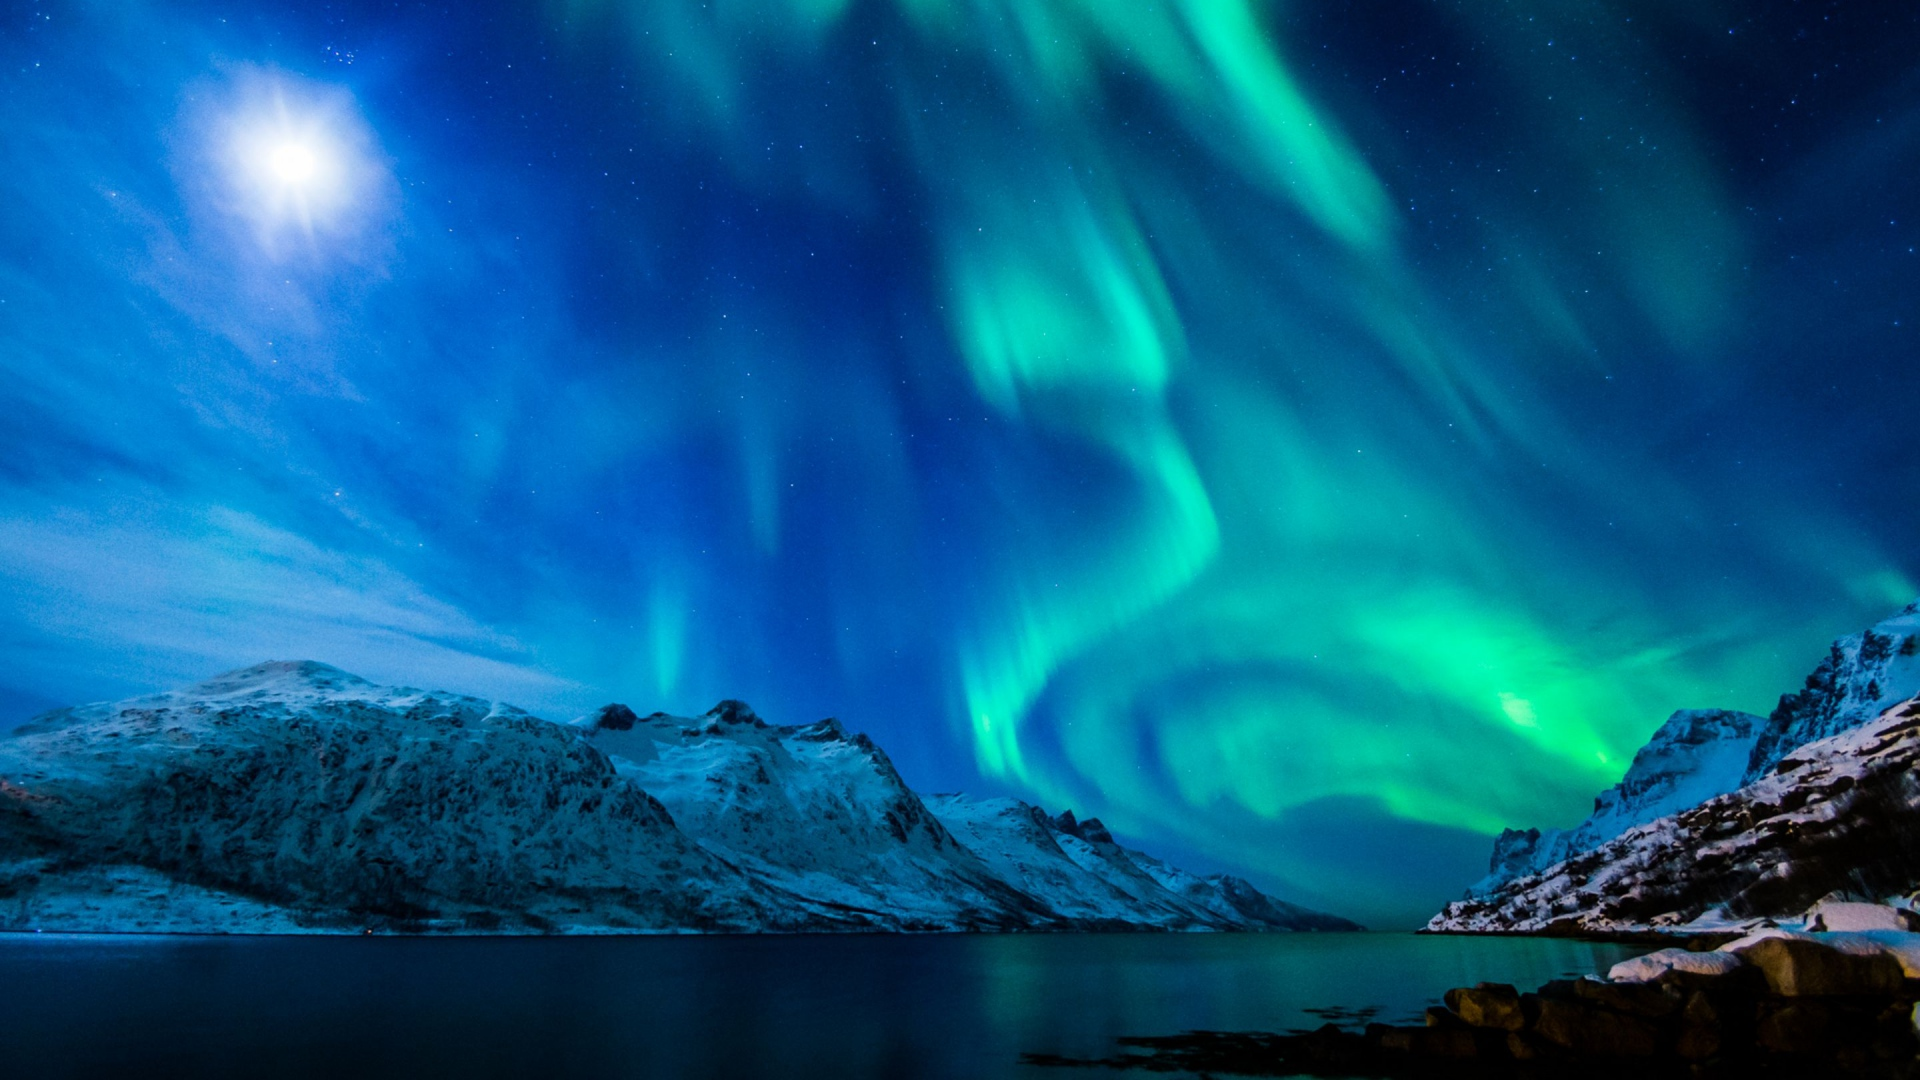 Northern Lights Wallpaper 1080p